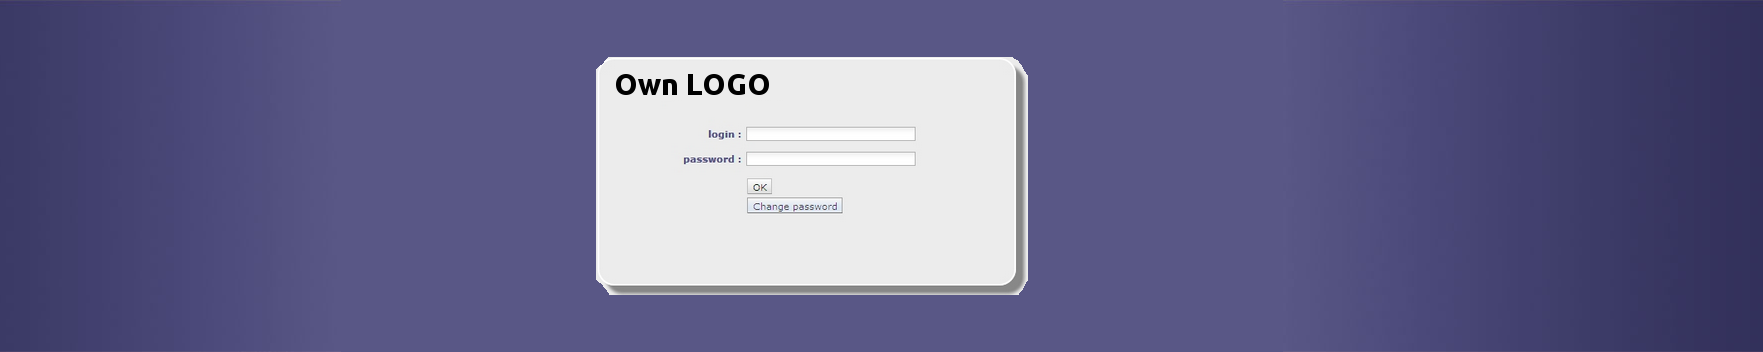 login_screen.png